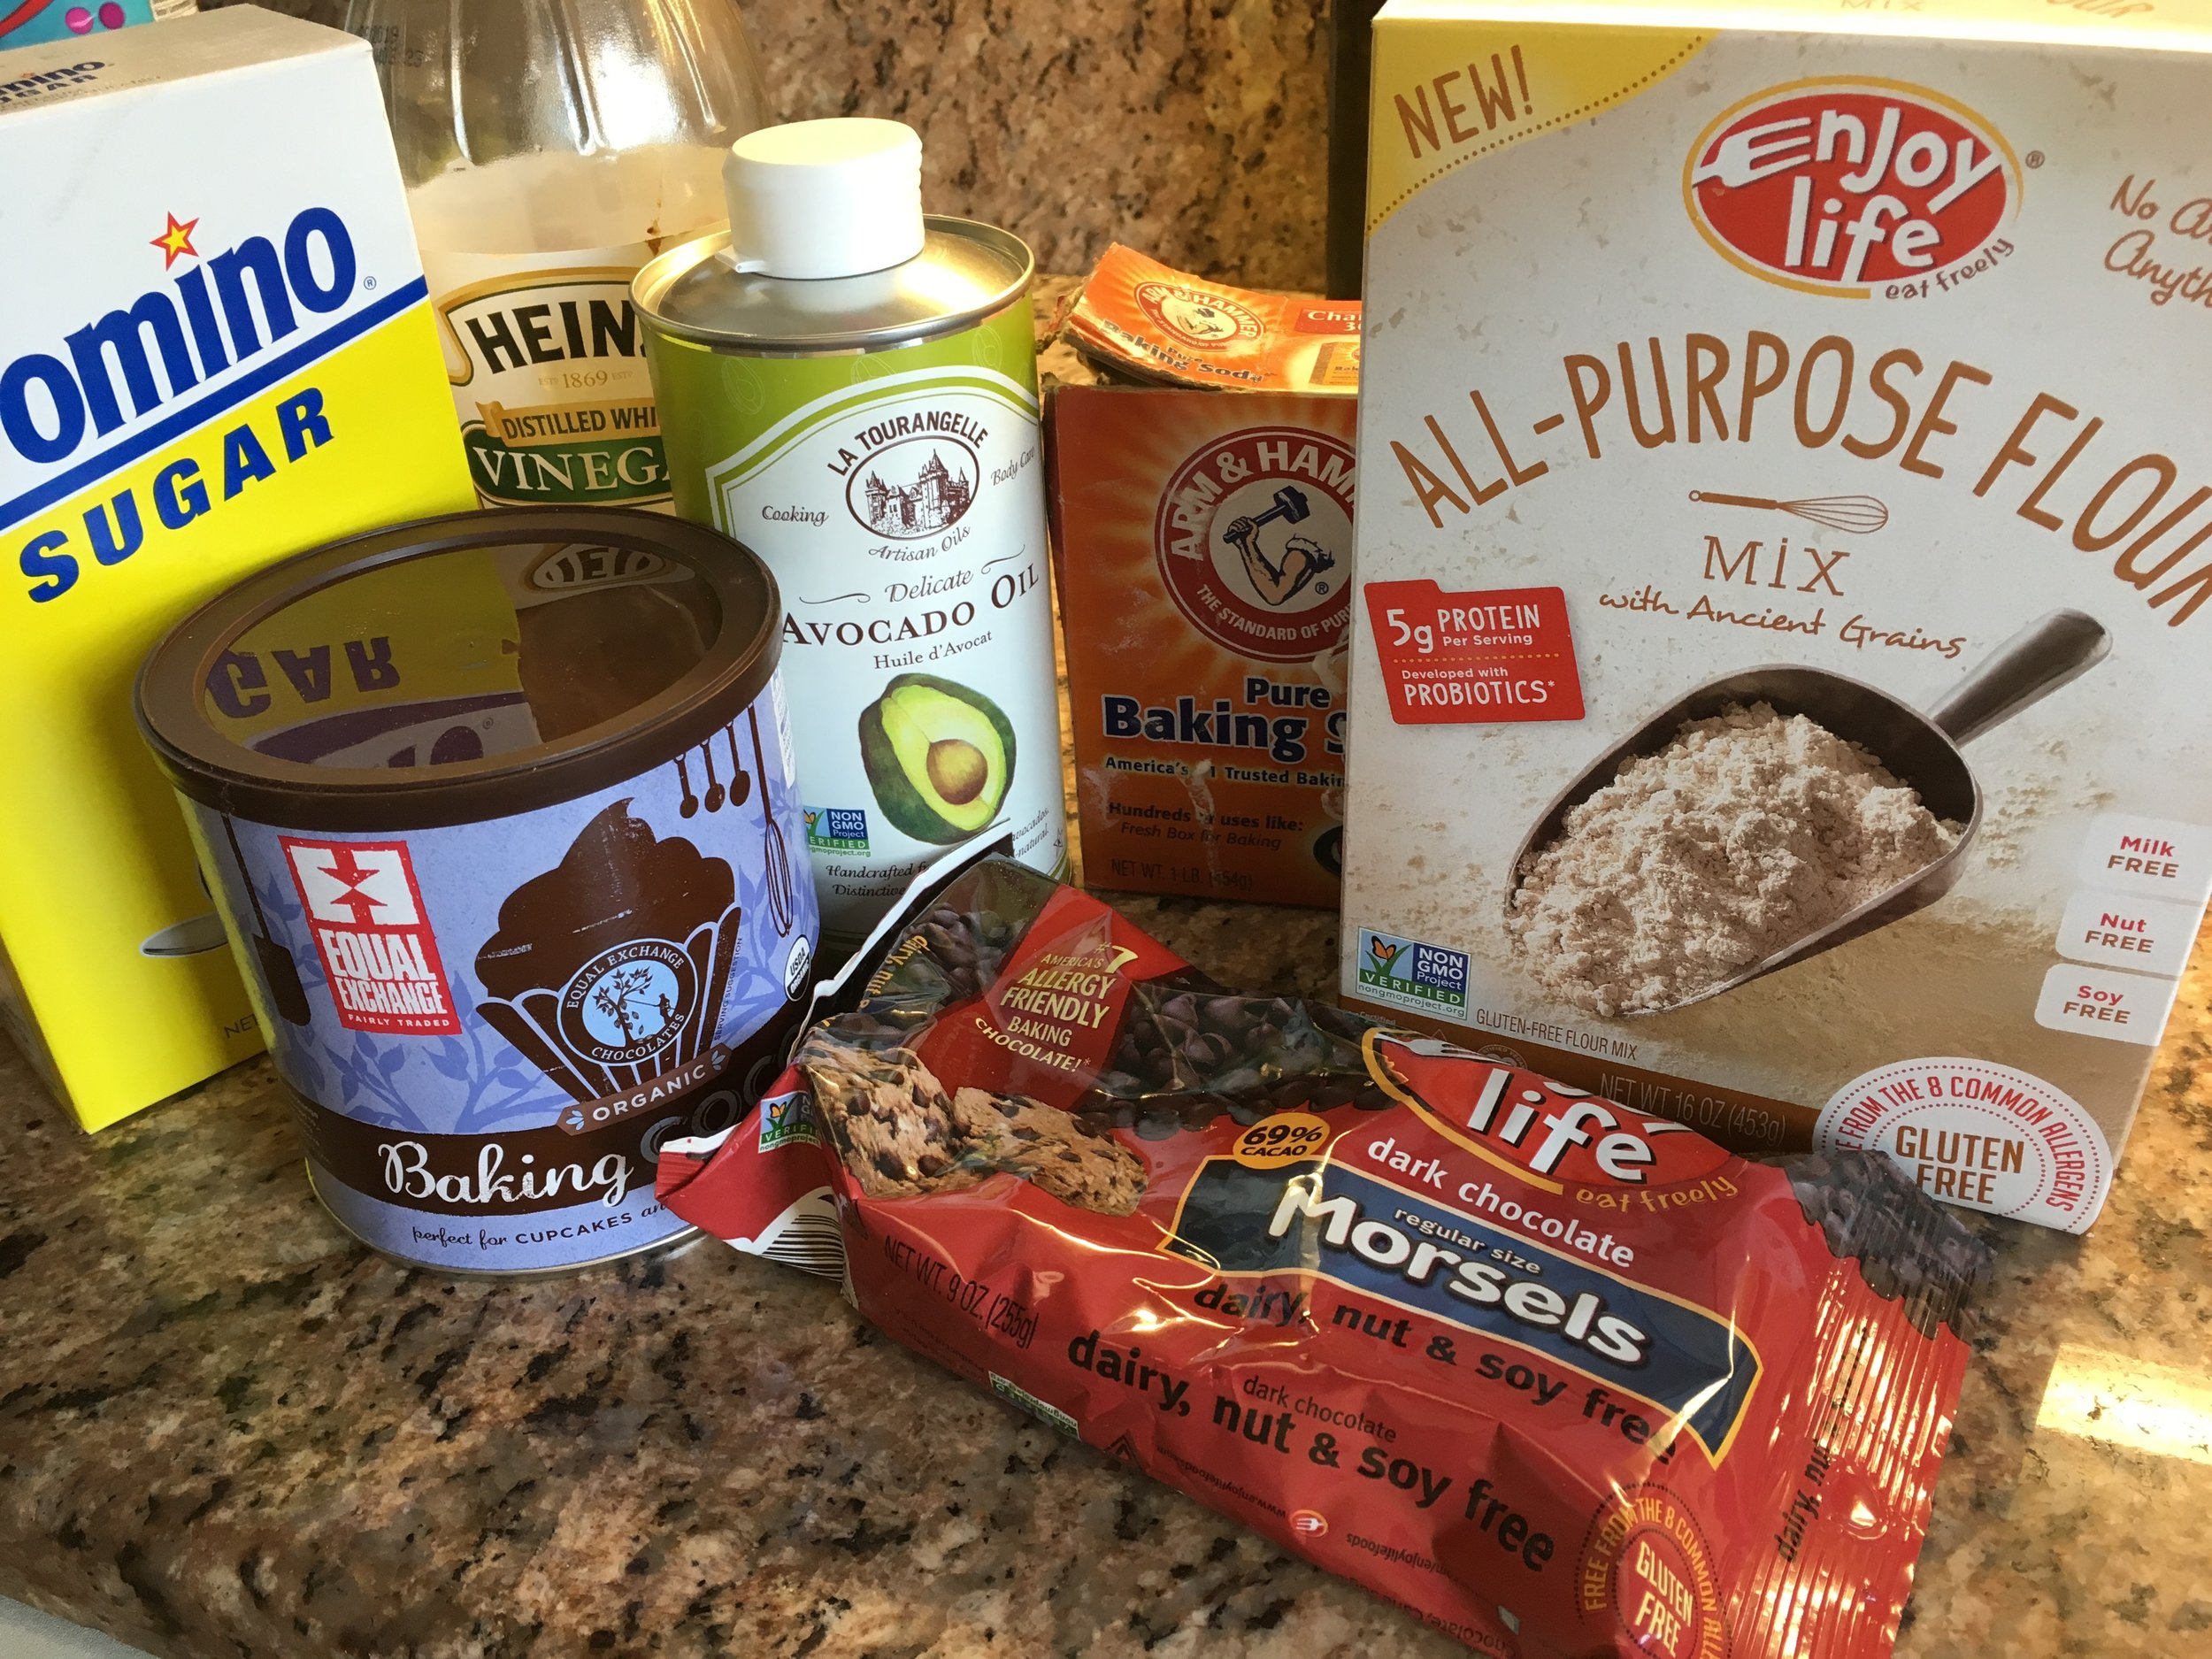 Wacky cake ingredients for gluten free cake